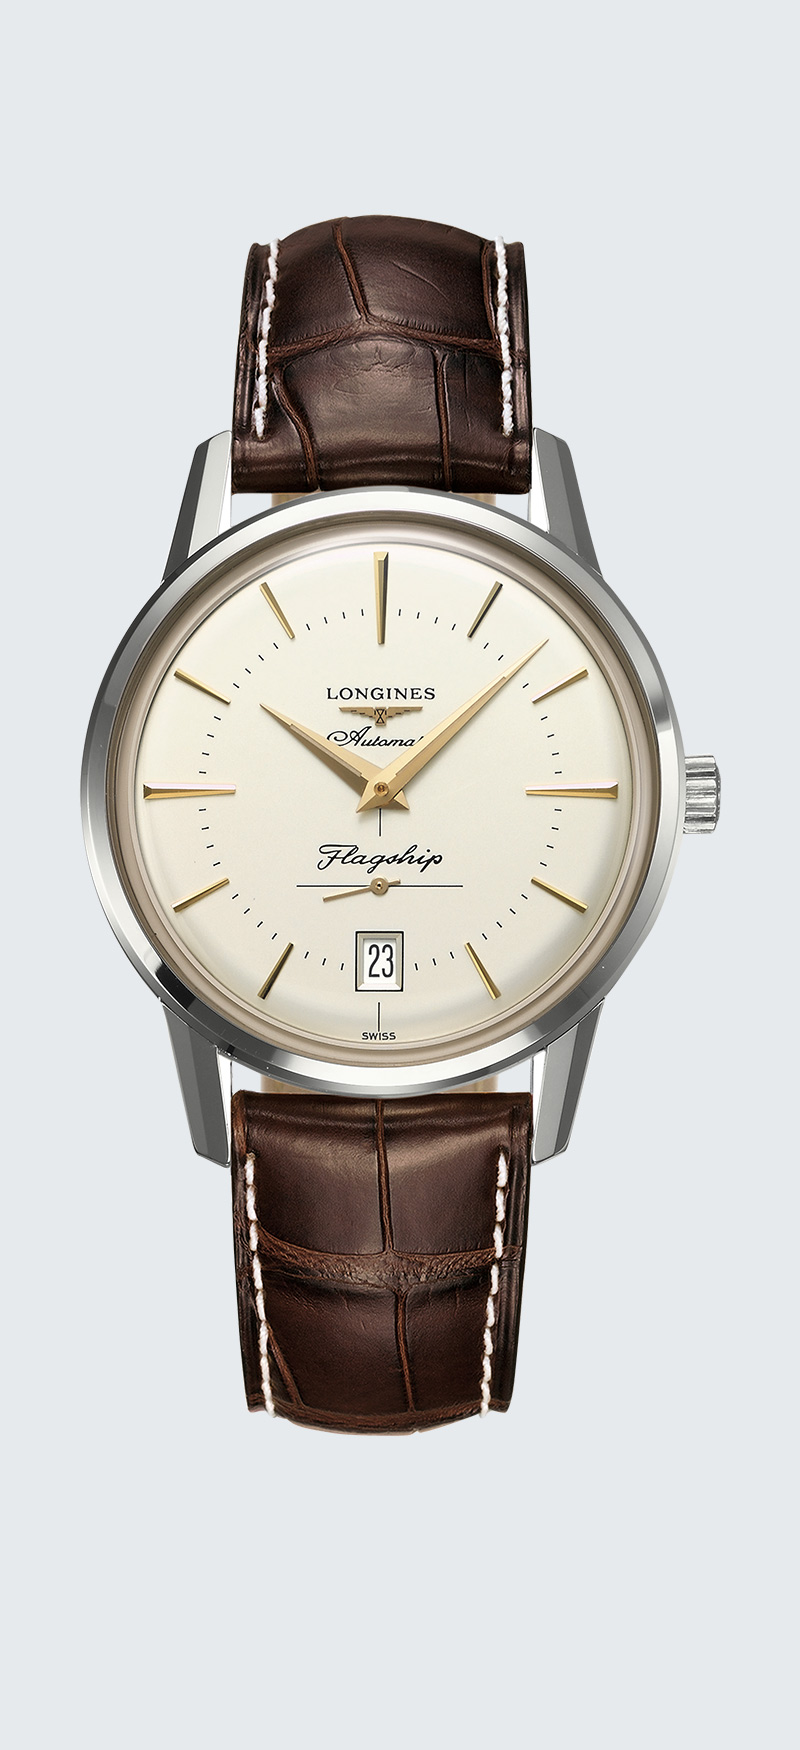 Name:  watch-heritage-collection--L4_795_4_78_2-800x1750.jpg Views: 107 Size:  205.4 KB